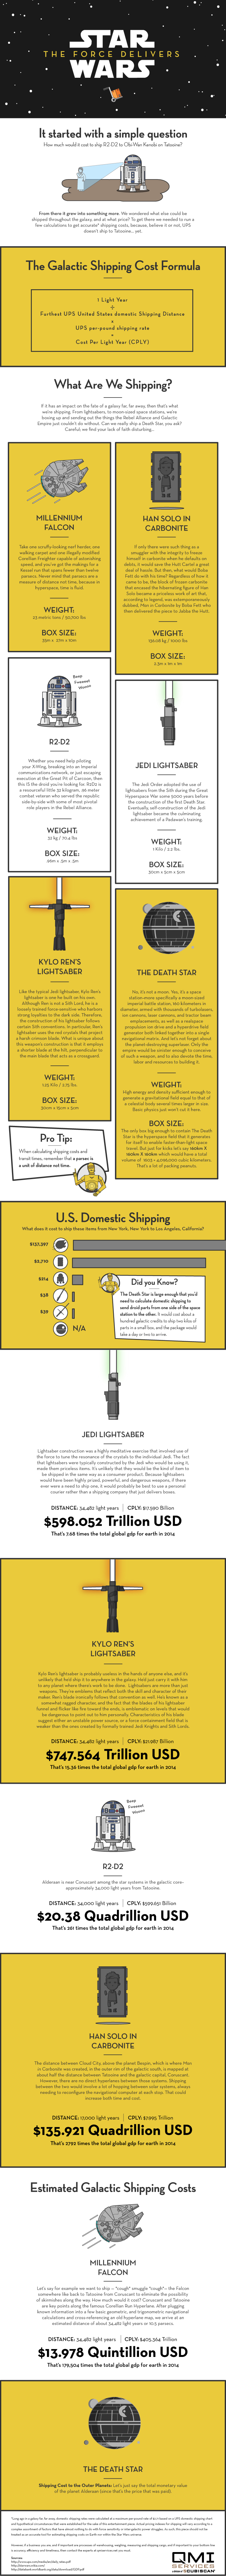 star-wars-shipping-infographic-final